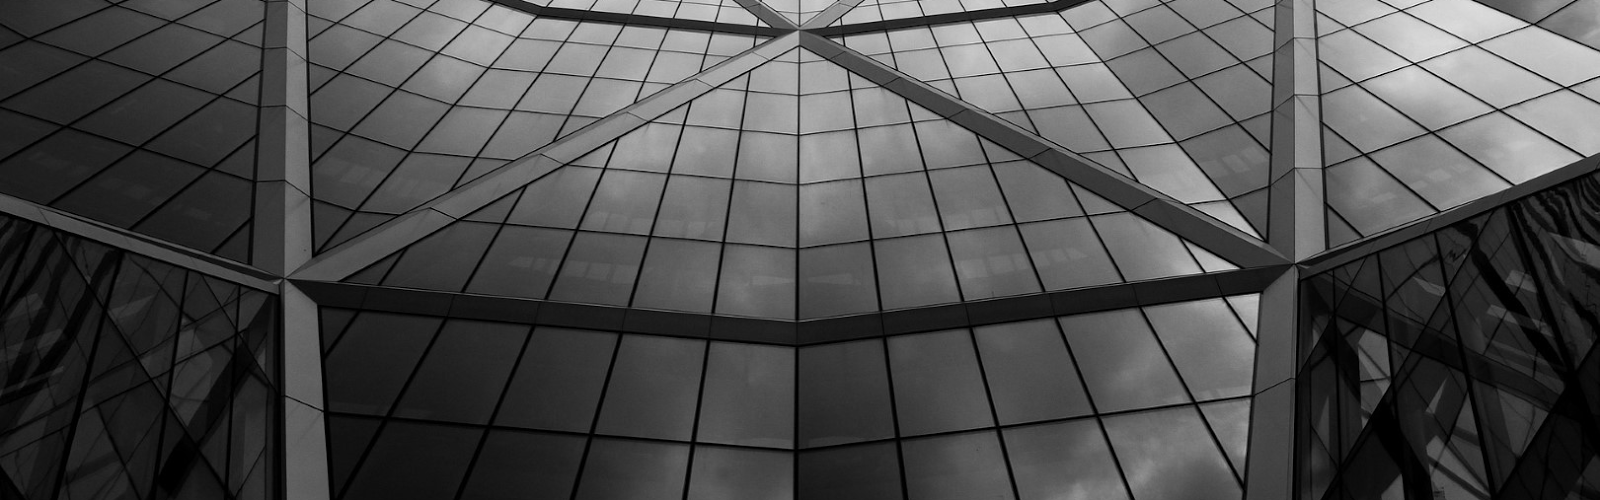 black and white photo of glass building